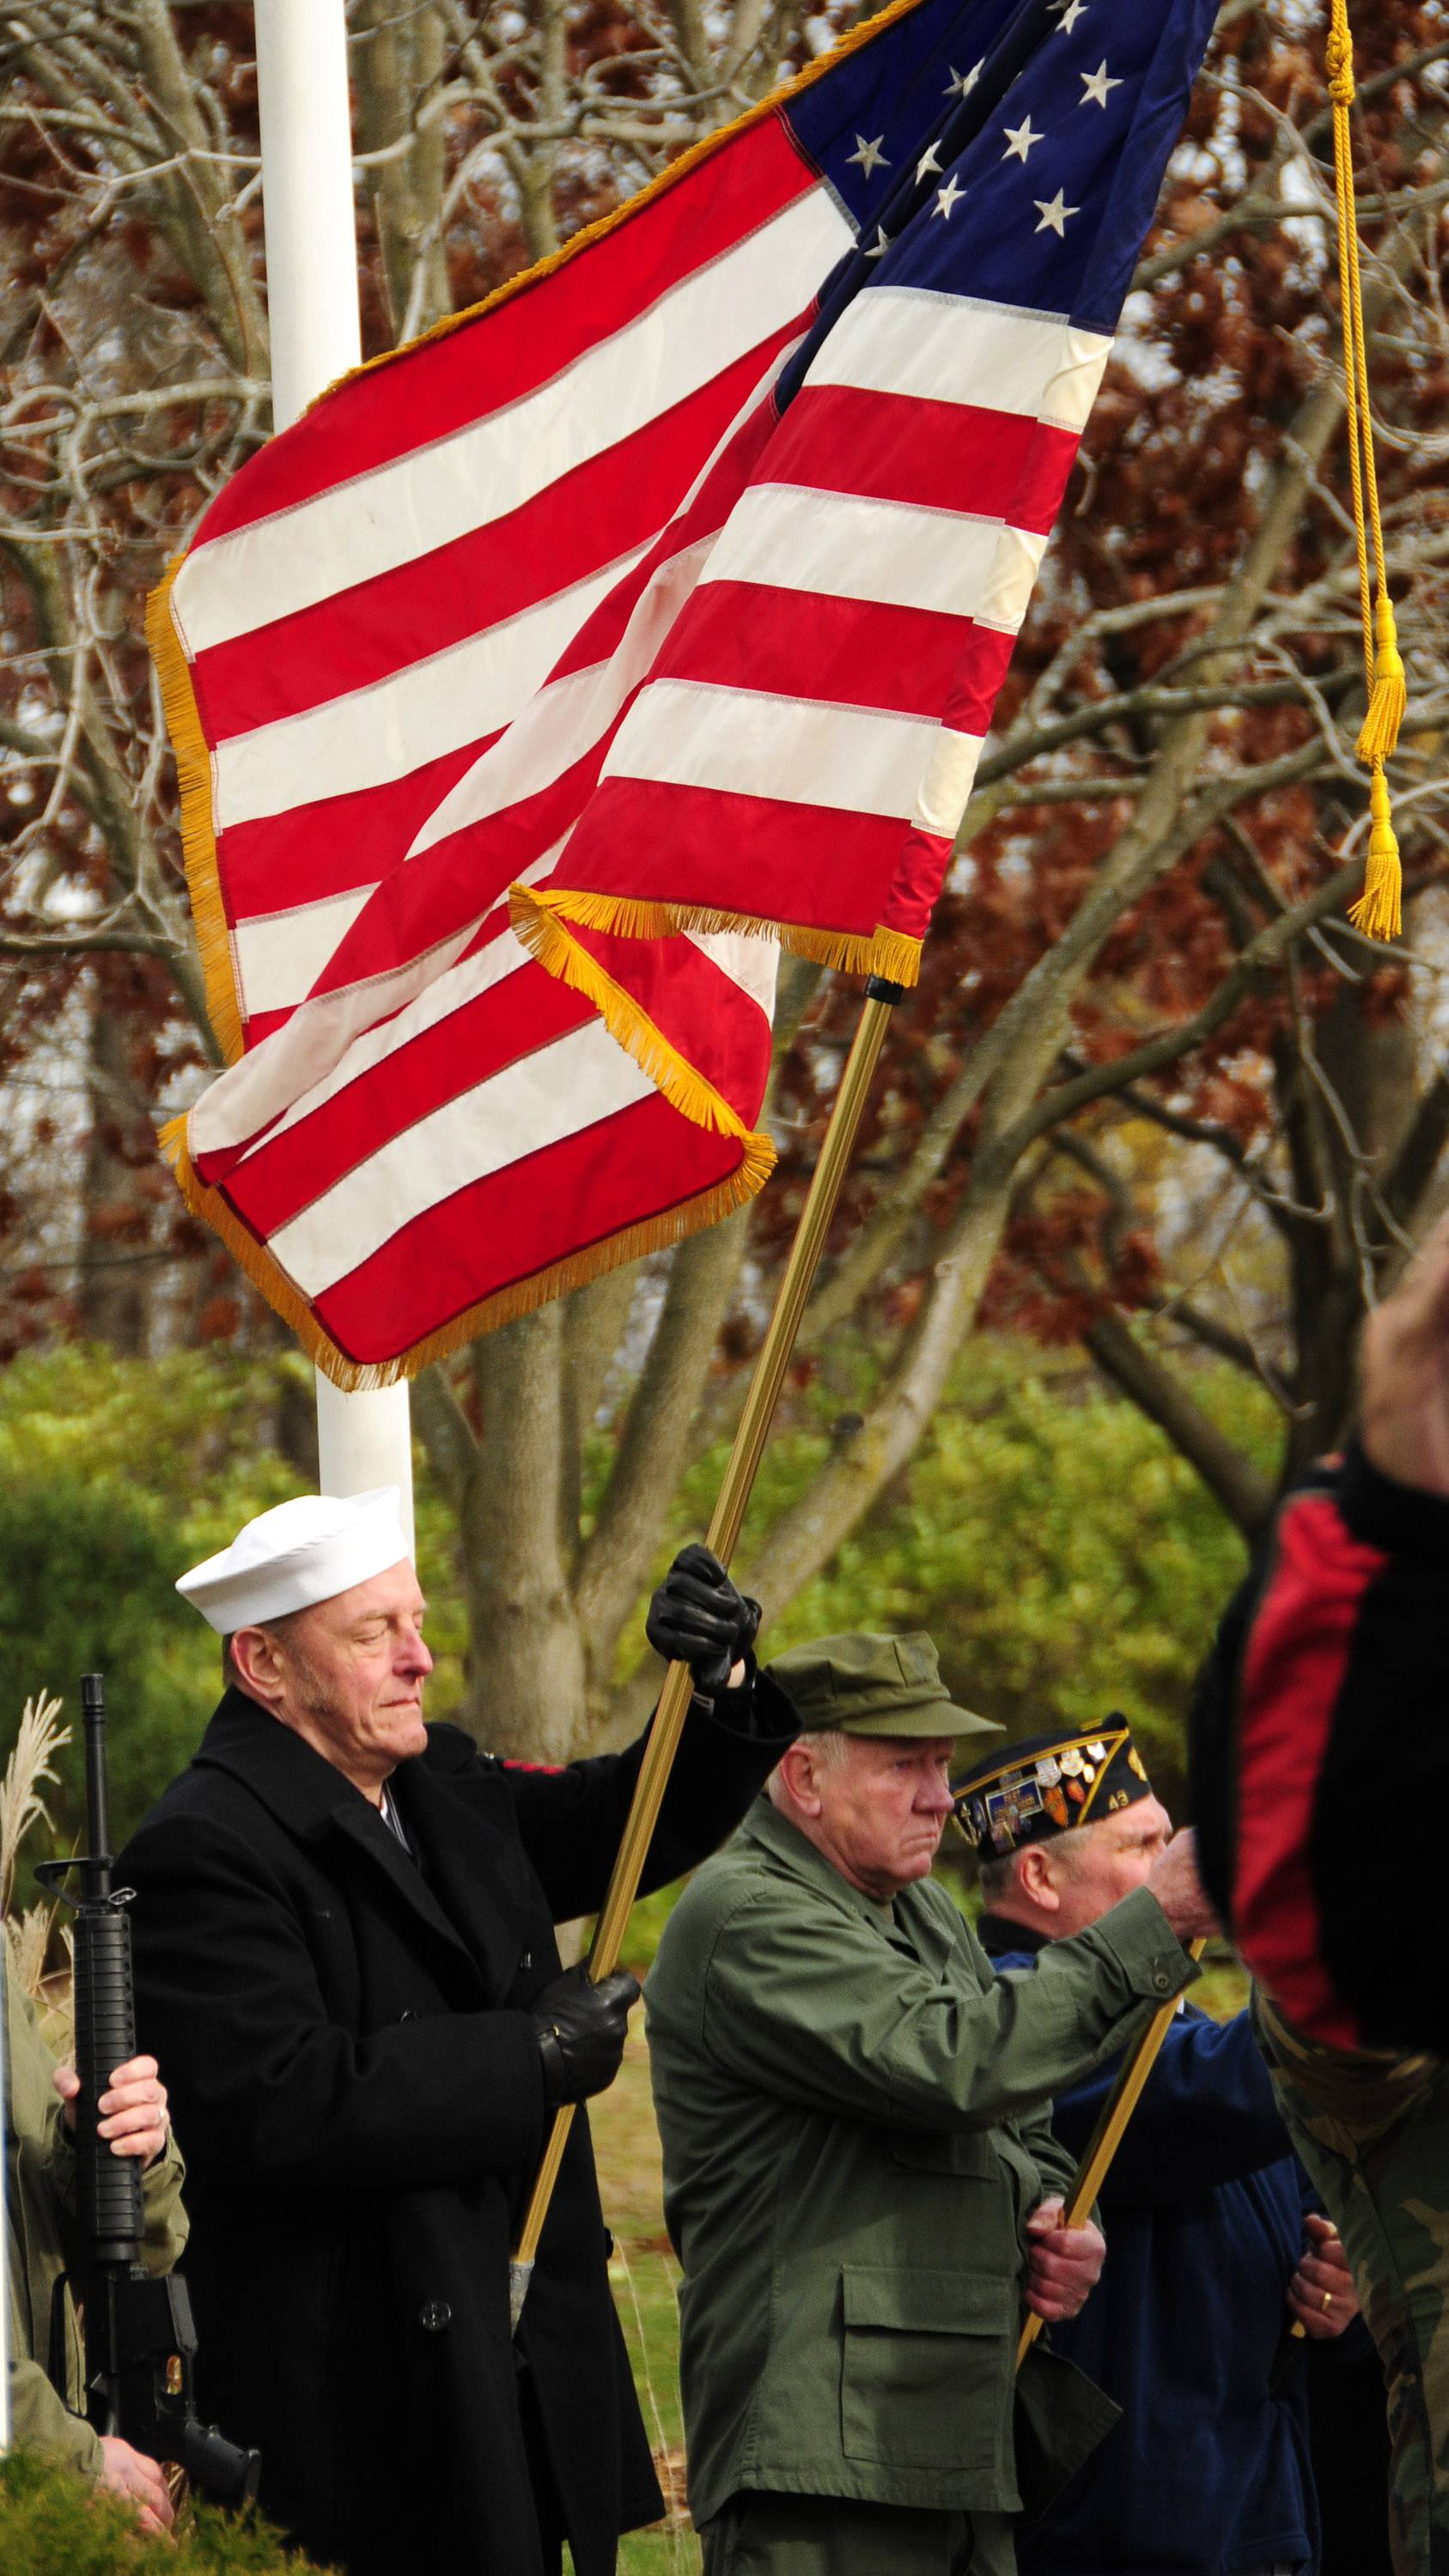 With flag ceremonies, 21-gun salutes and the playing of taps, communities throughout the area will show their gratitude for veterans' service.